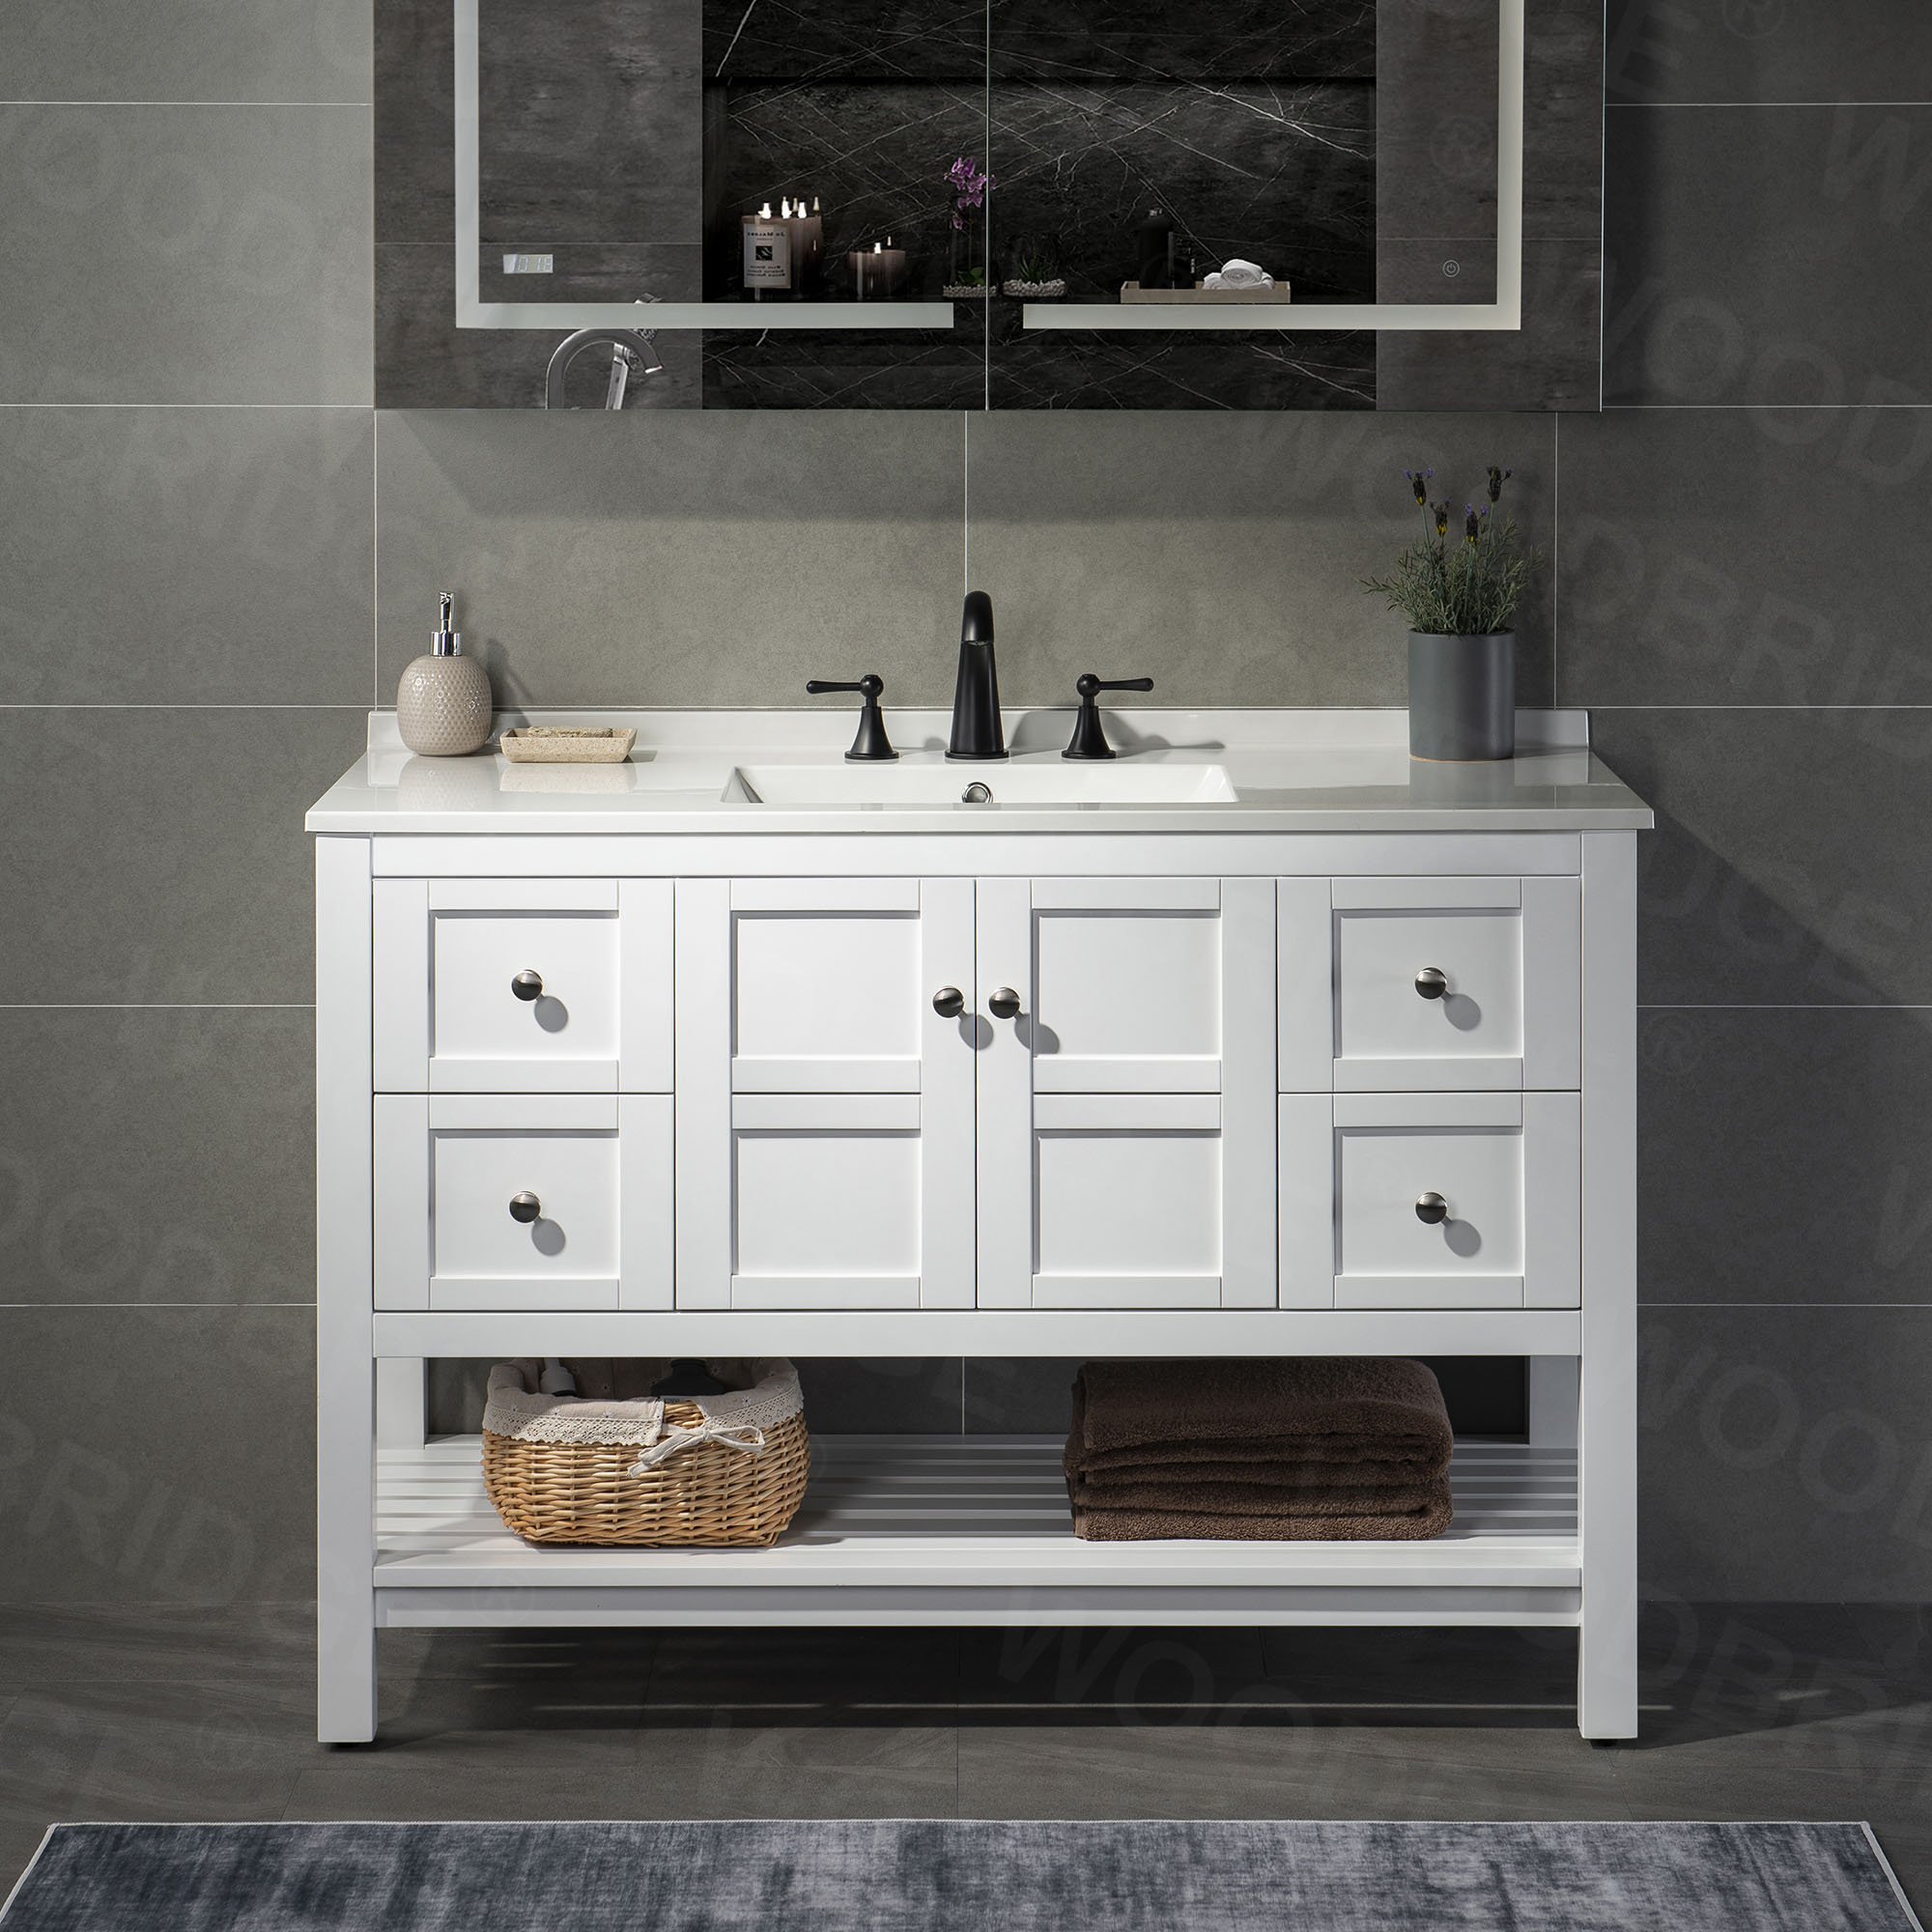 ᐅ Sydney 48 Inch Solid Wood Bathroom Vanity With White Solid Surface Vanity Top 8 Faucet Holes 2 Soft Closing Doors And 4 Full Extension Solid Wood Dovetail Drawers White Vanity Color Woodbridge